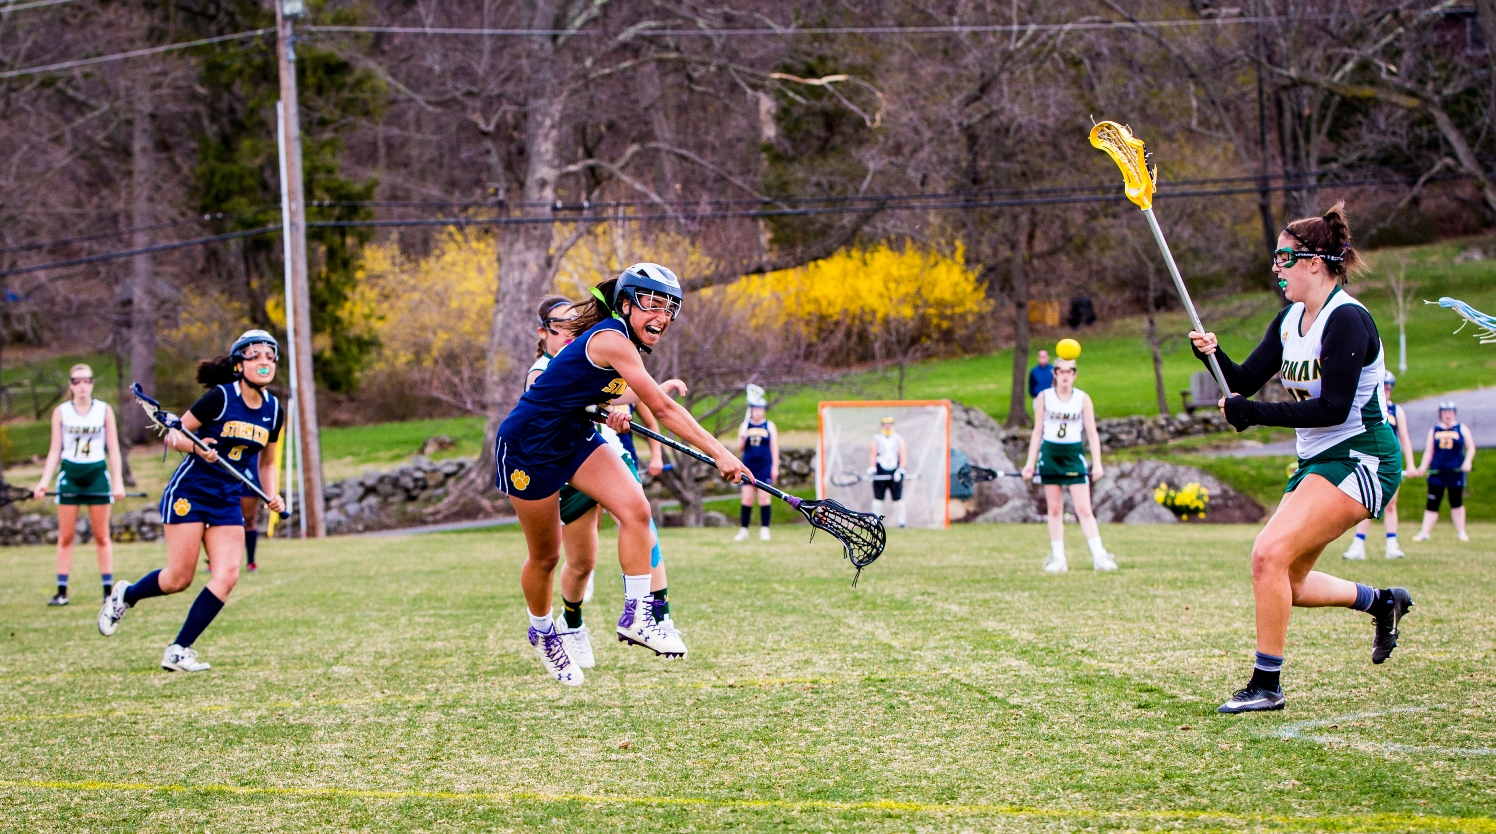 Girls varsity lacrosse against Forman School